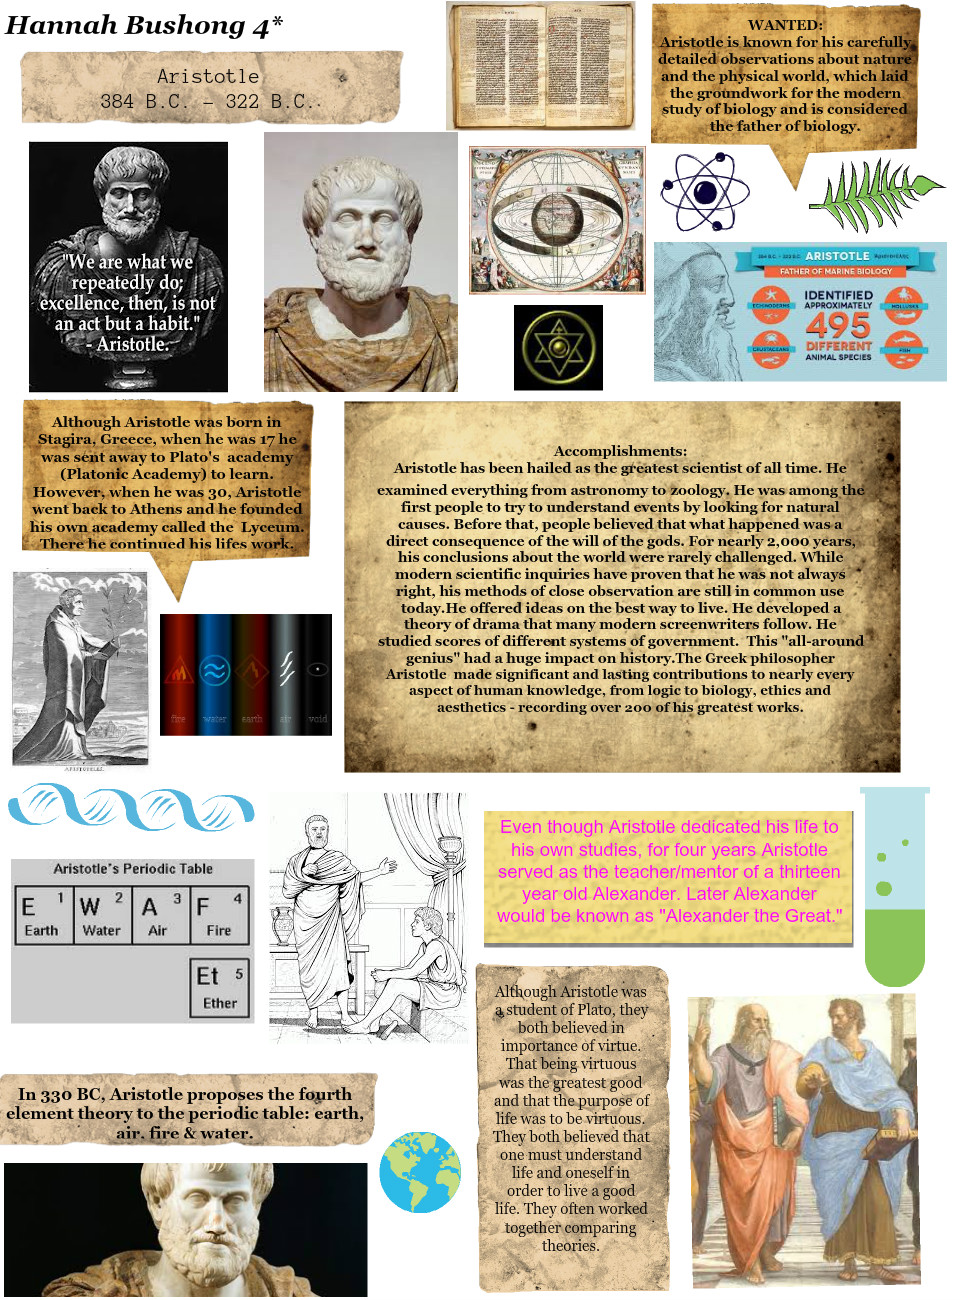 Aristotle Wanted Poster By Hannah Bushong Text Images Music